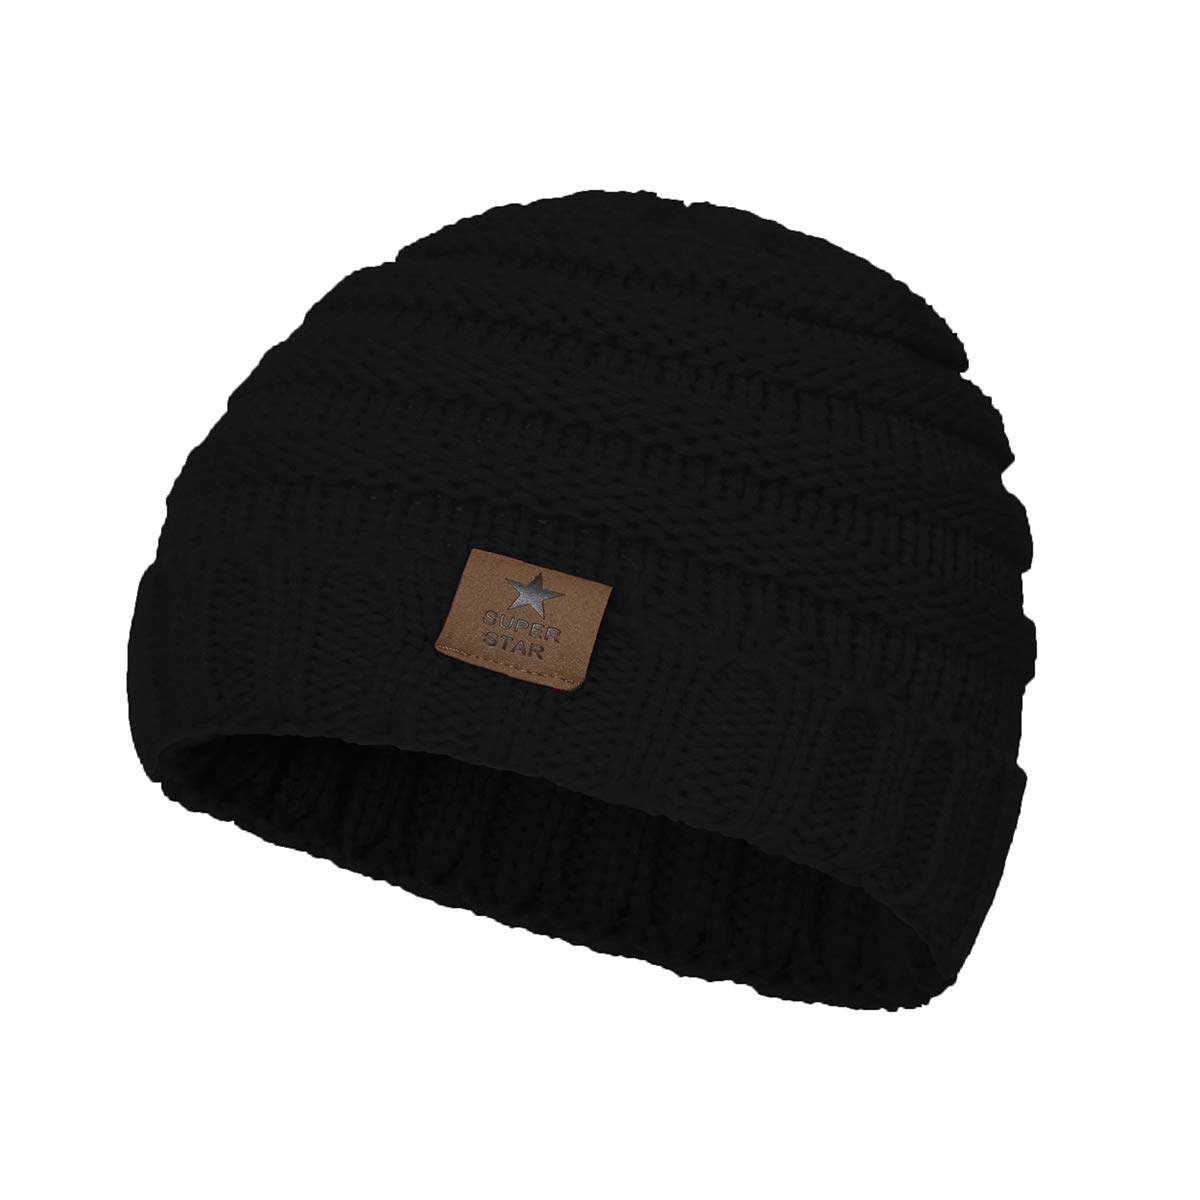 American Trends Baby Winter Warm Lined Hat Kids Knit Beanie Cap for Girls and Boys ATTFCS2581ADA6P